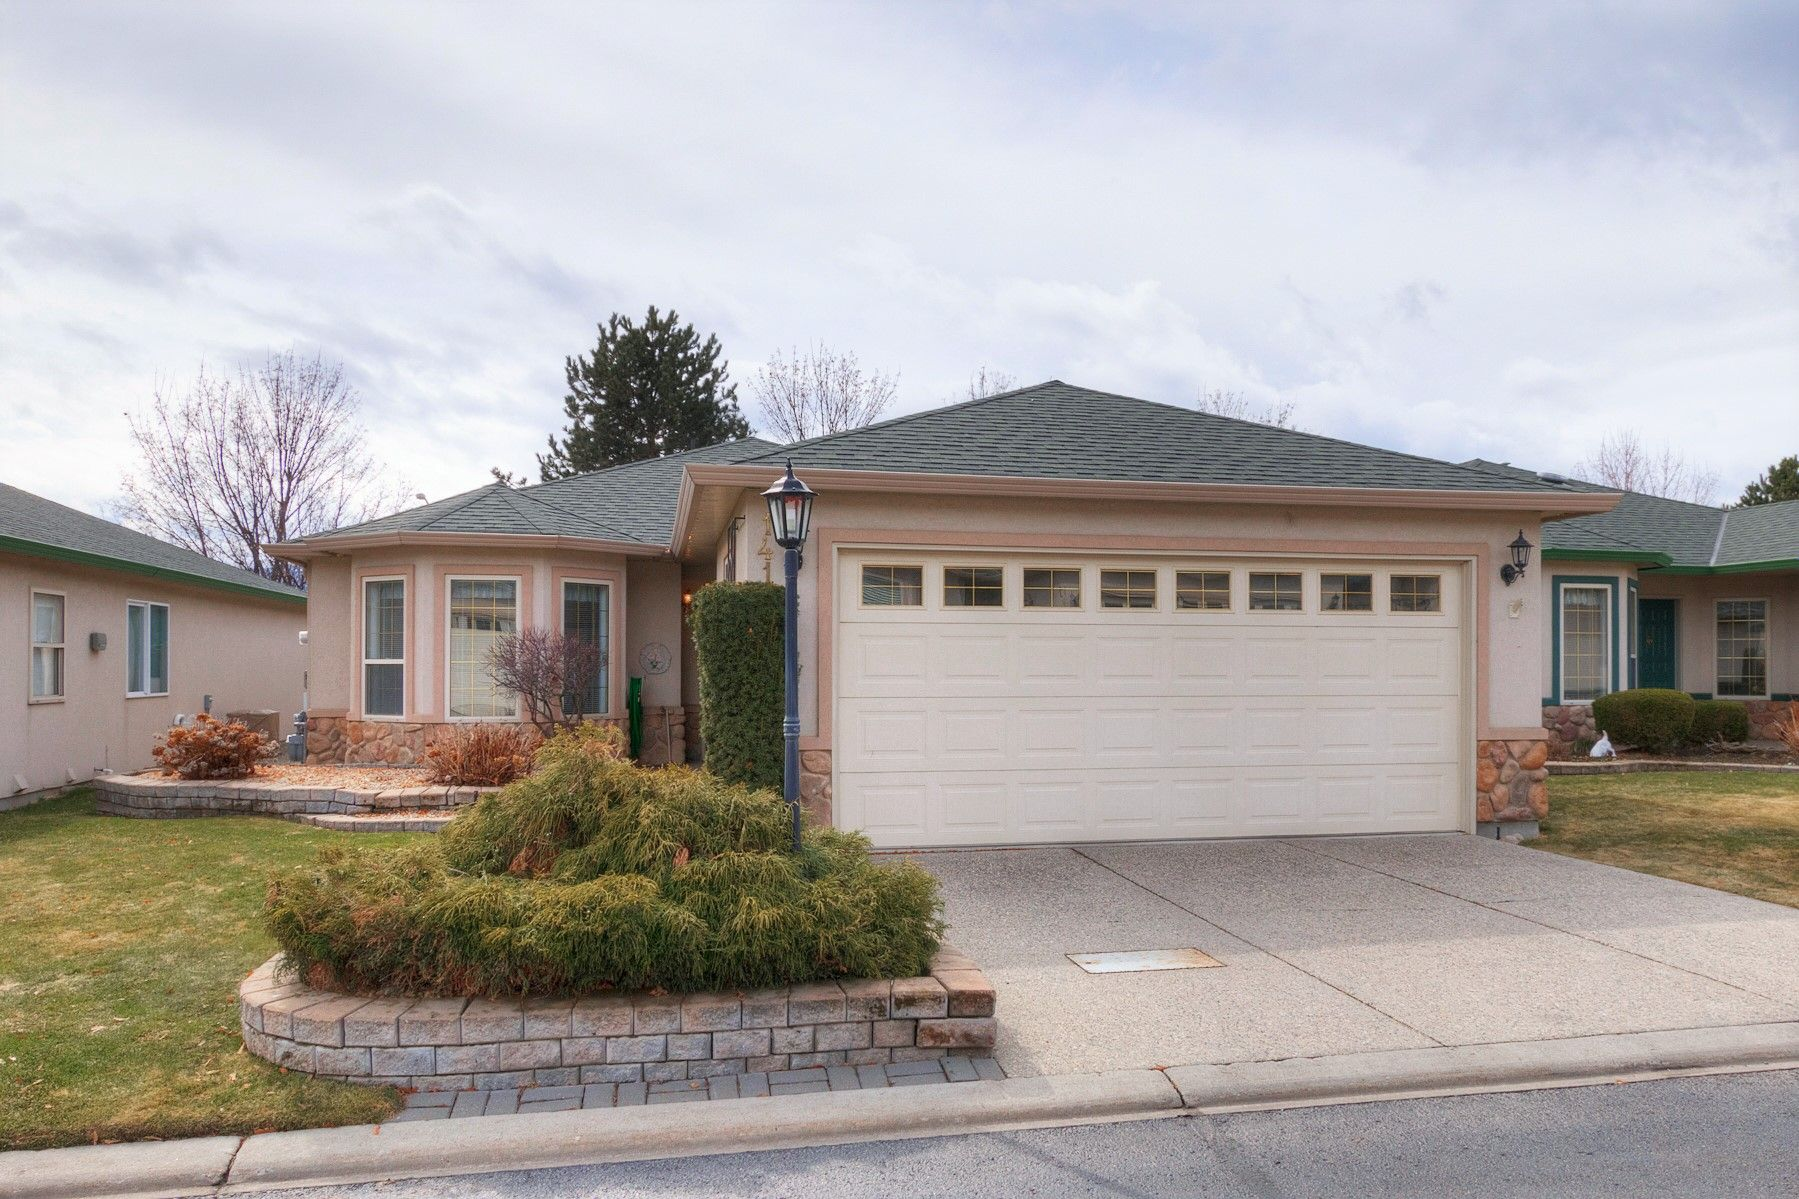 Main Photo: 141 2330 Butt Road in West Kelowna: westbank centre House for sale (central okanagan)  : MLS®# 10179339